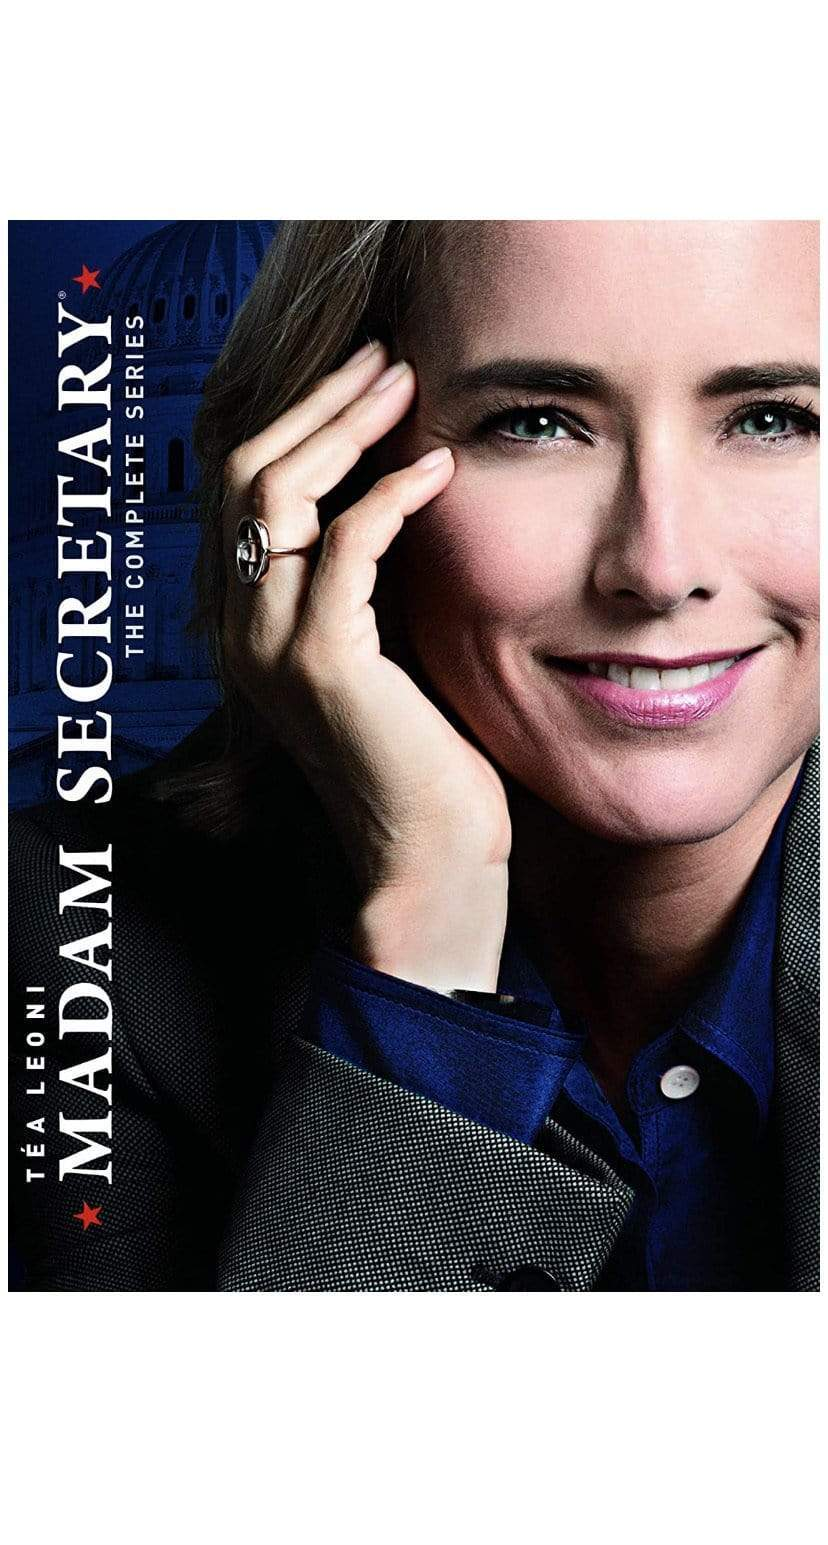 Madam Secretary DVD Complete Series Set Paramount Home Entertainment DVDs & Blu-ray Discs > DVDs